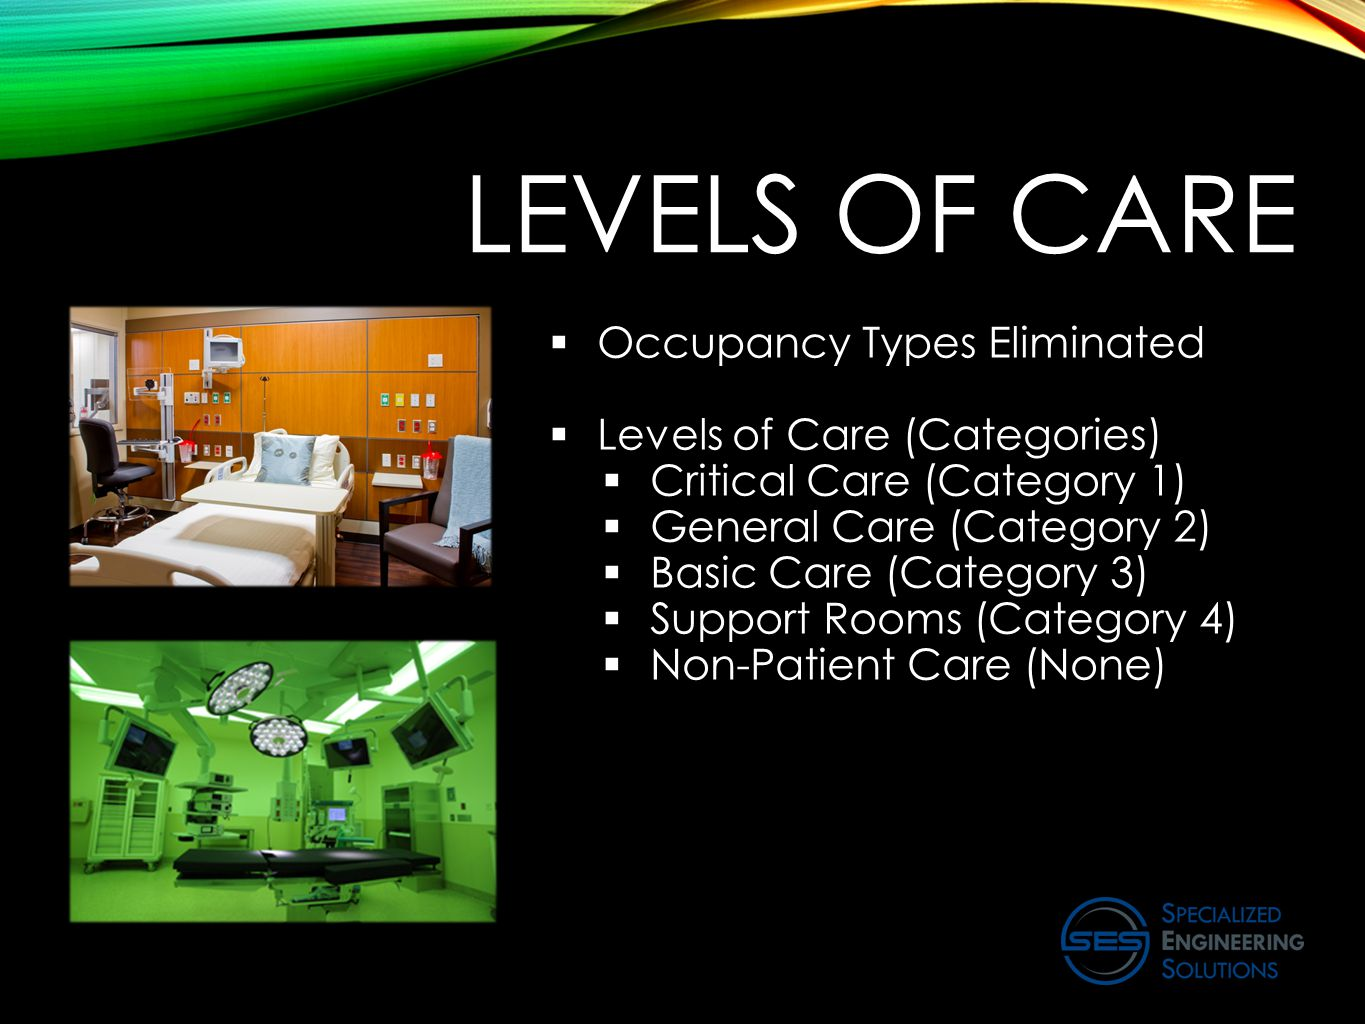 LEVELS OF CARE  Occupancy Types Eliminated  Levels of Care (Categories)  Critical Care (Category 1)  General Care (Category 2)  Basic Care (Category 3)  Support Rooms (Category 4)  Non-Patient Care (None)